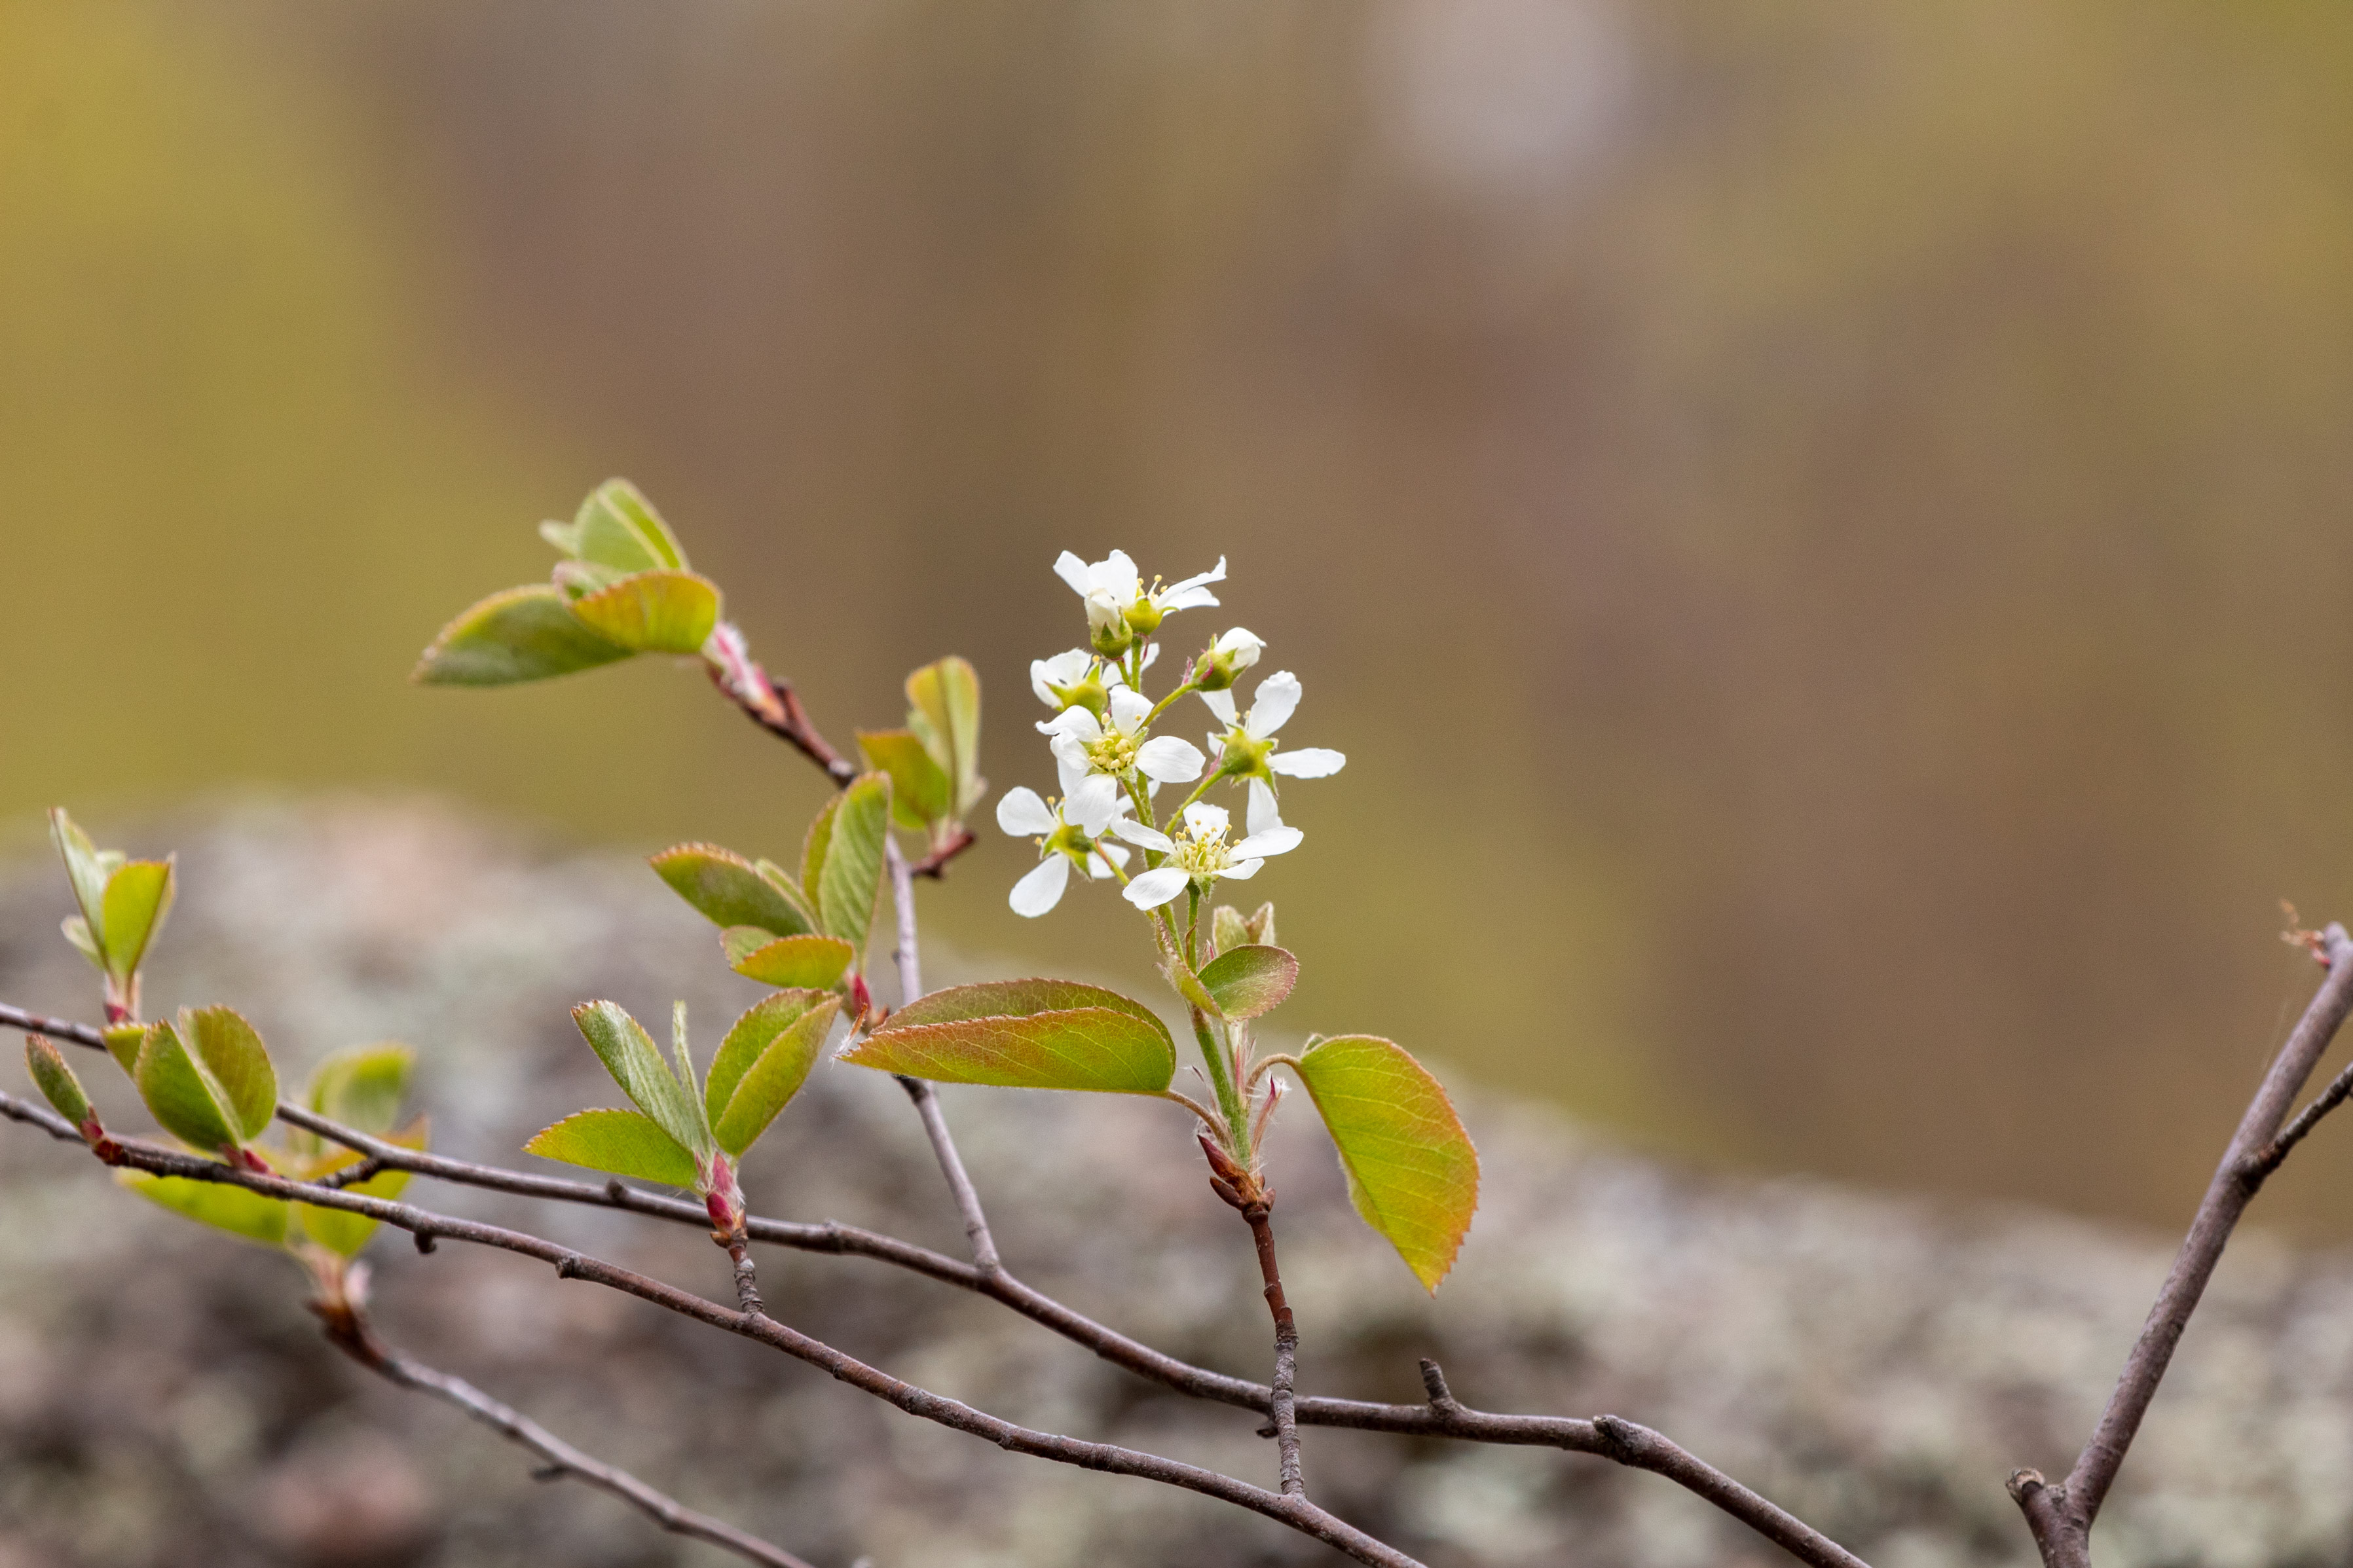 Small white flowers blossoming on a branch